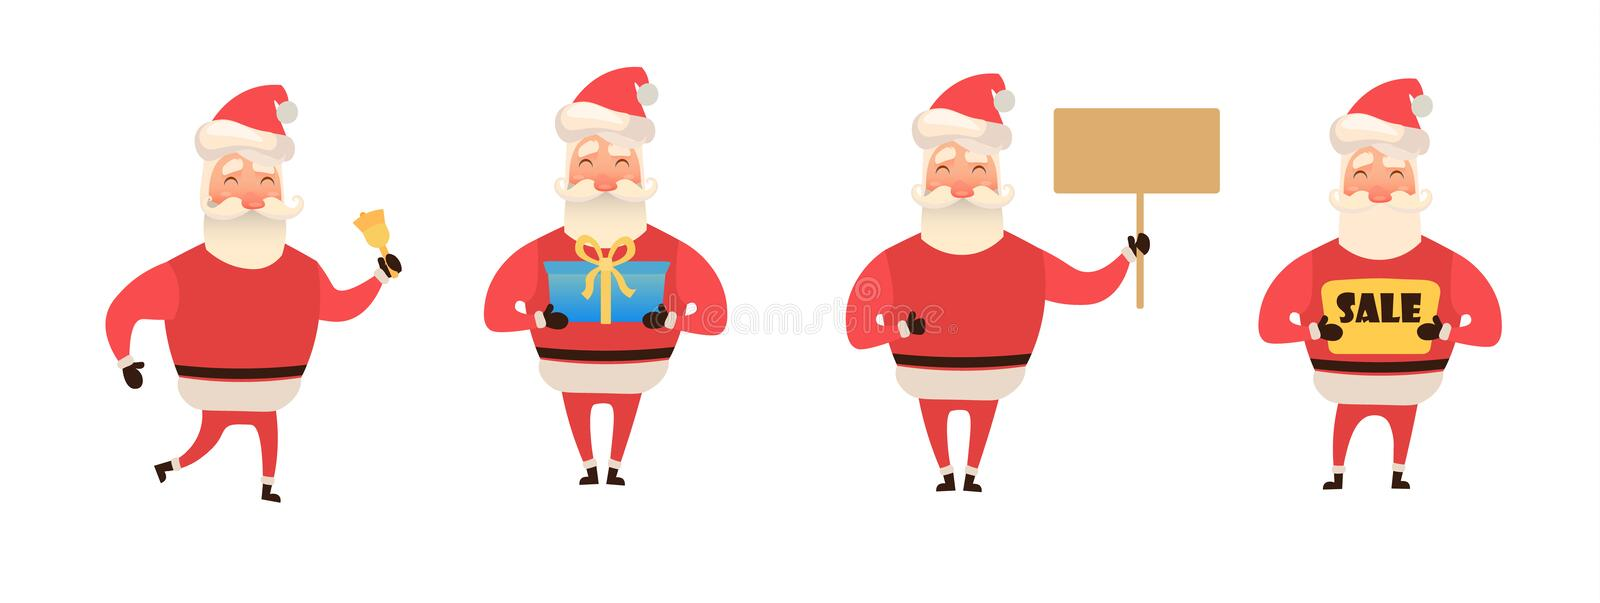 Set of cartoon Christmas illustrations isolated on white. Funny happy Santa Claus character with gift, bag with presents stock illustration